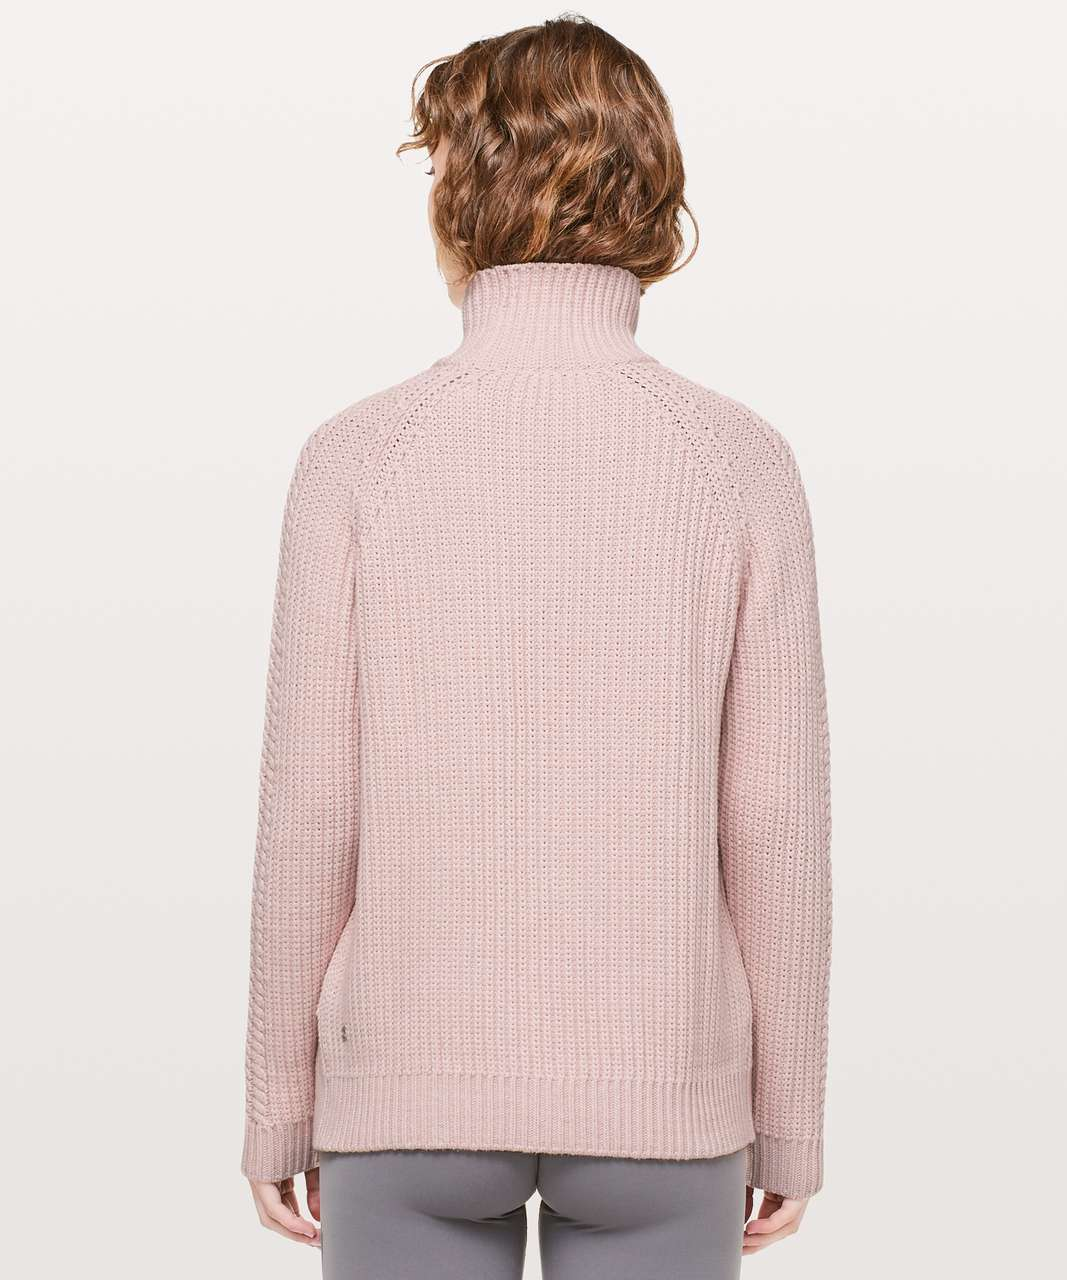 Lululemon Bring The Cozy Turtleneck - Misty Pink